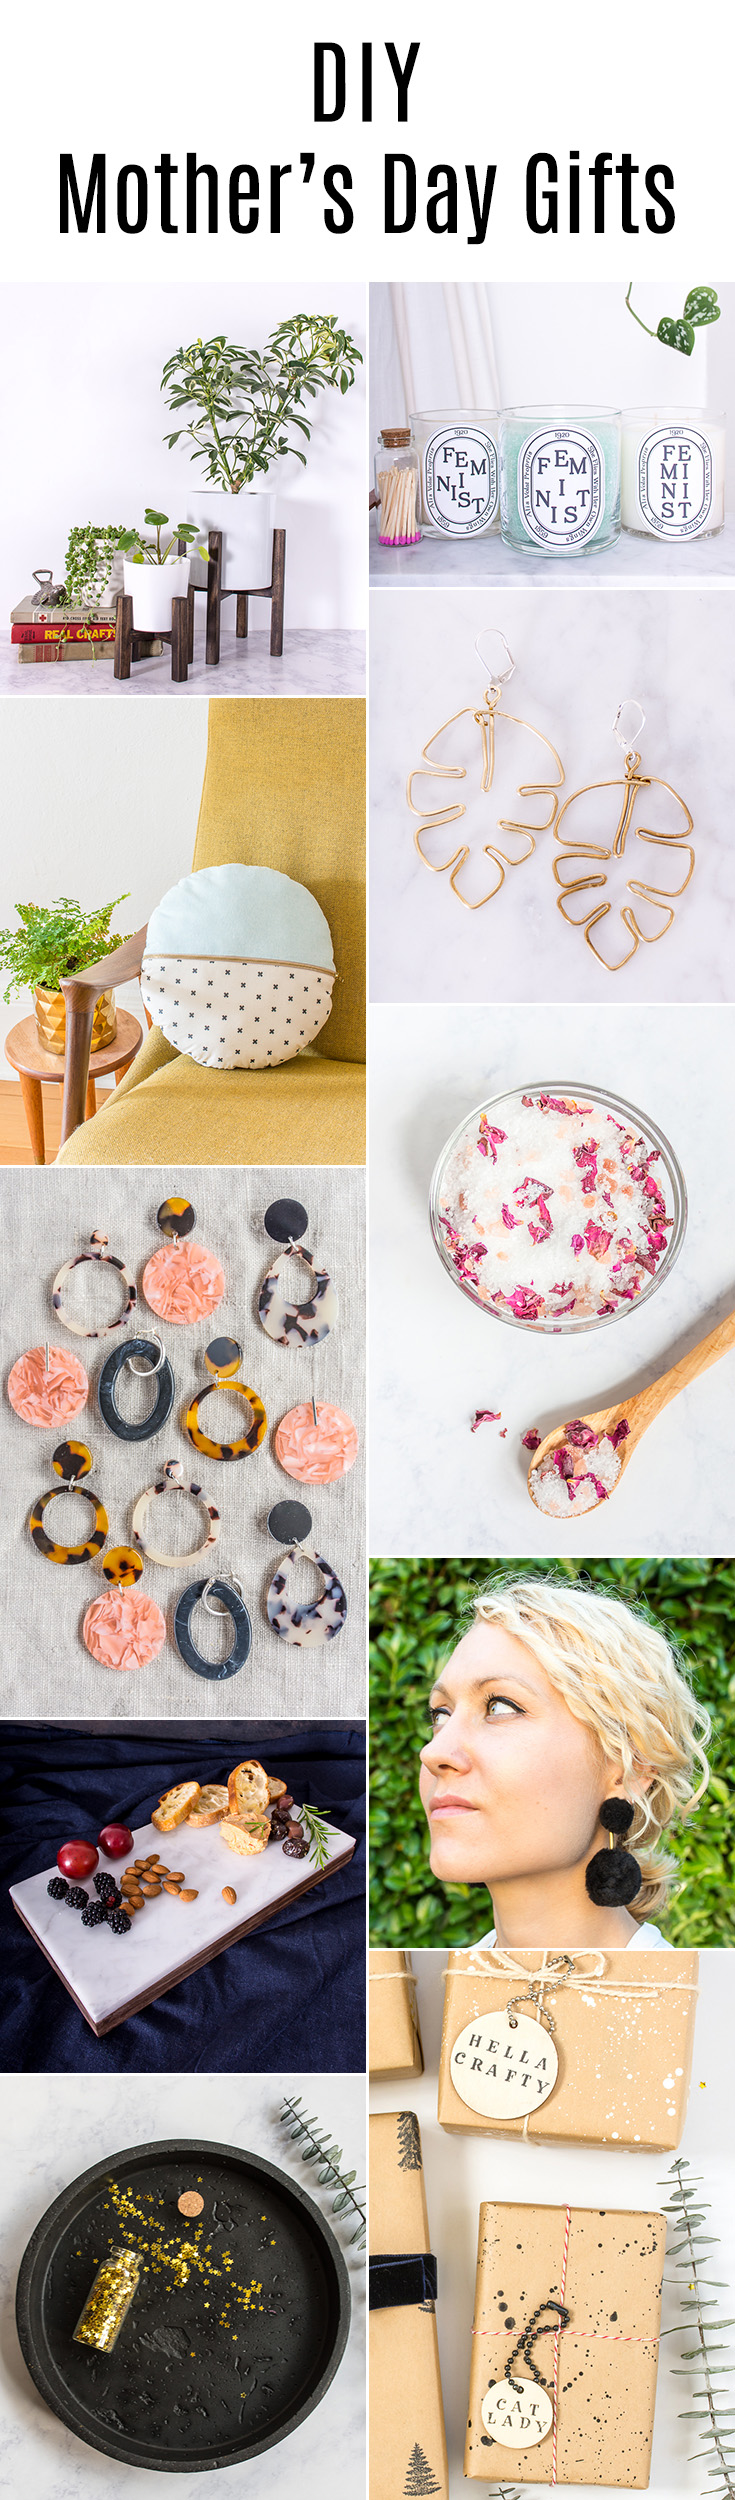 Want to make your mom a gift? This #DIY Mother's Day gift guide has you covered.